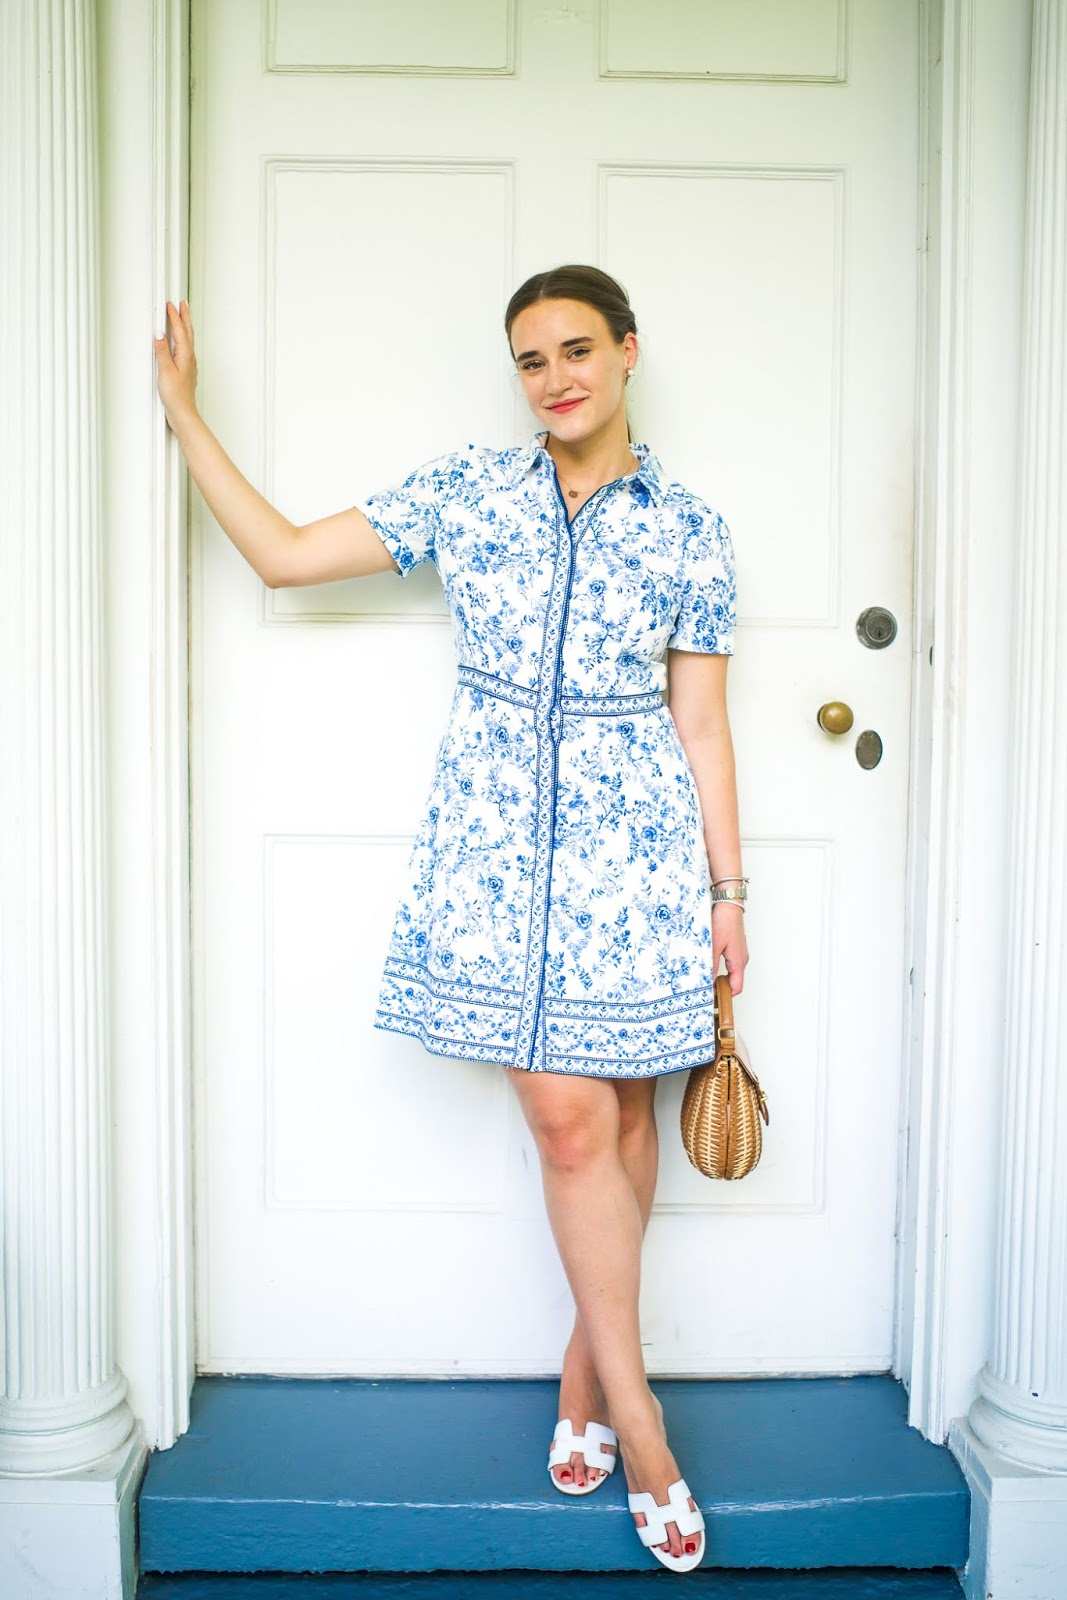 Toile floral shirt dress styled by popular New York fashion blogger Covering the Bases